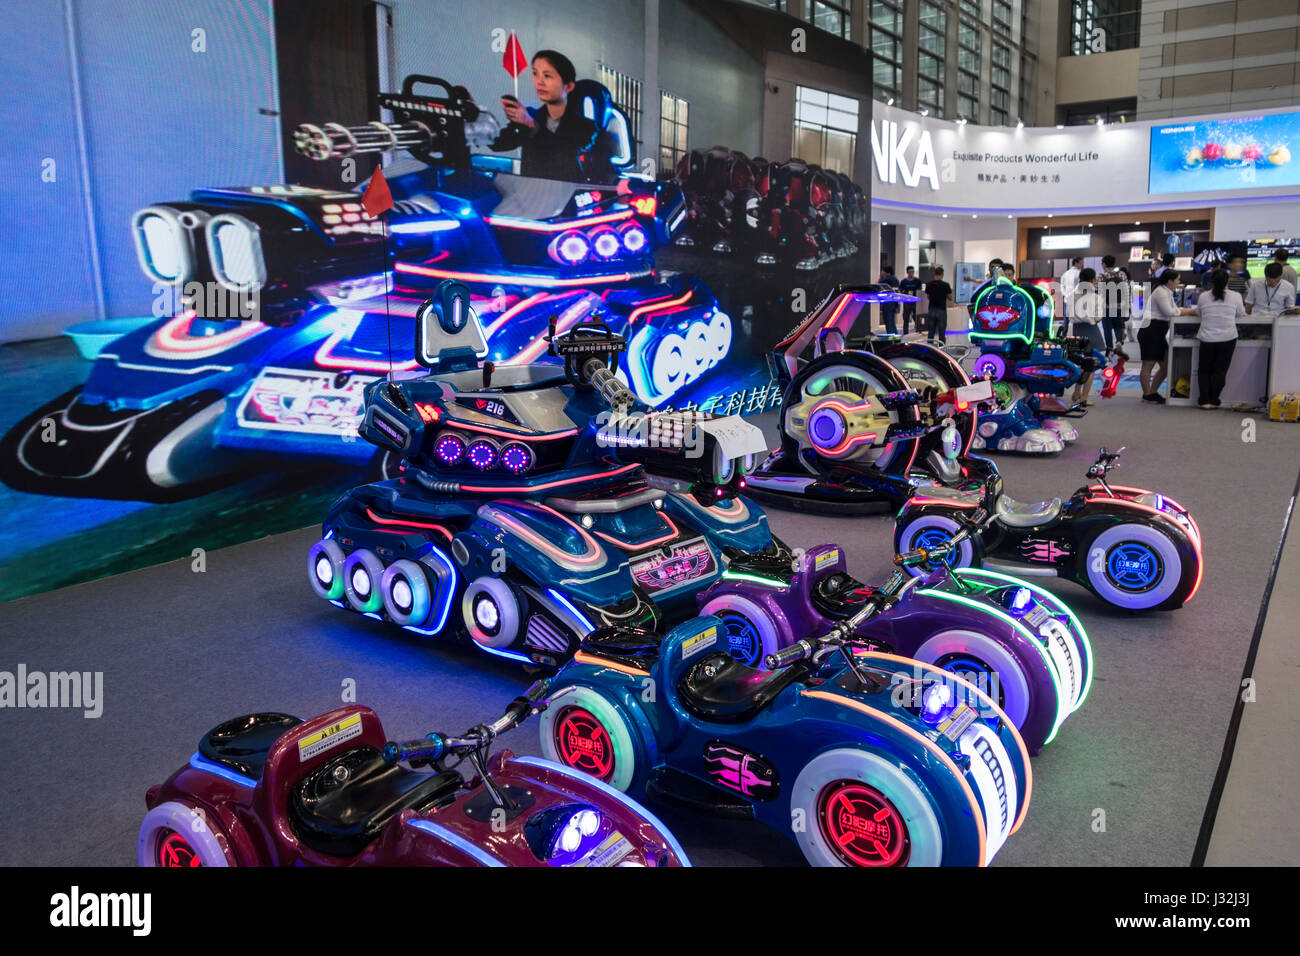 Kids Cars High Resolution Stock Photography and Images - Alamy